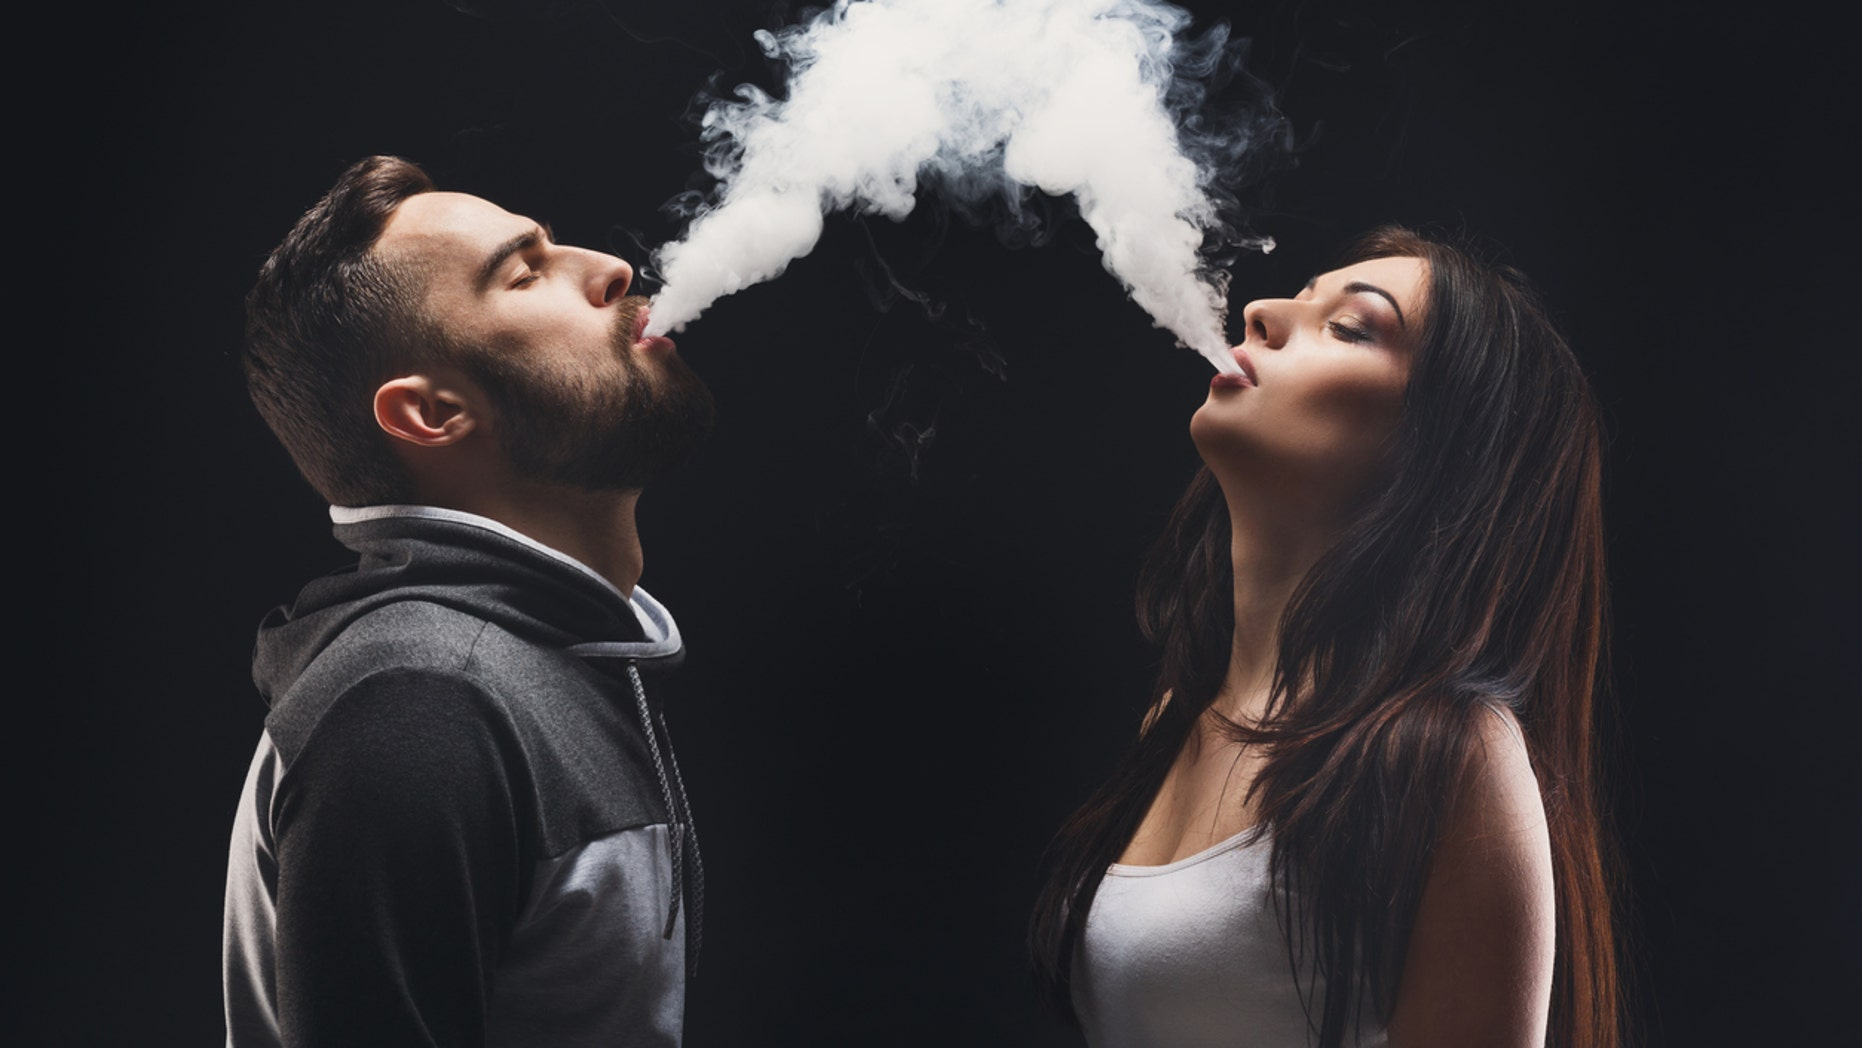 Vaping seems to be the new wedding photo trend for young couples.